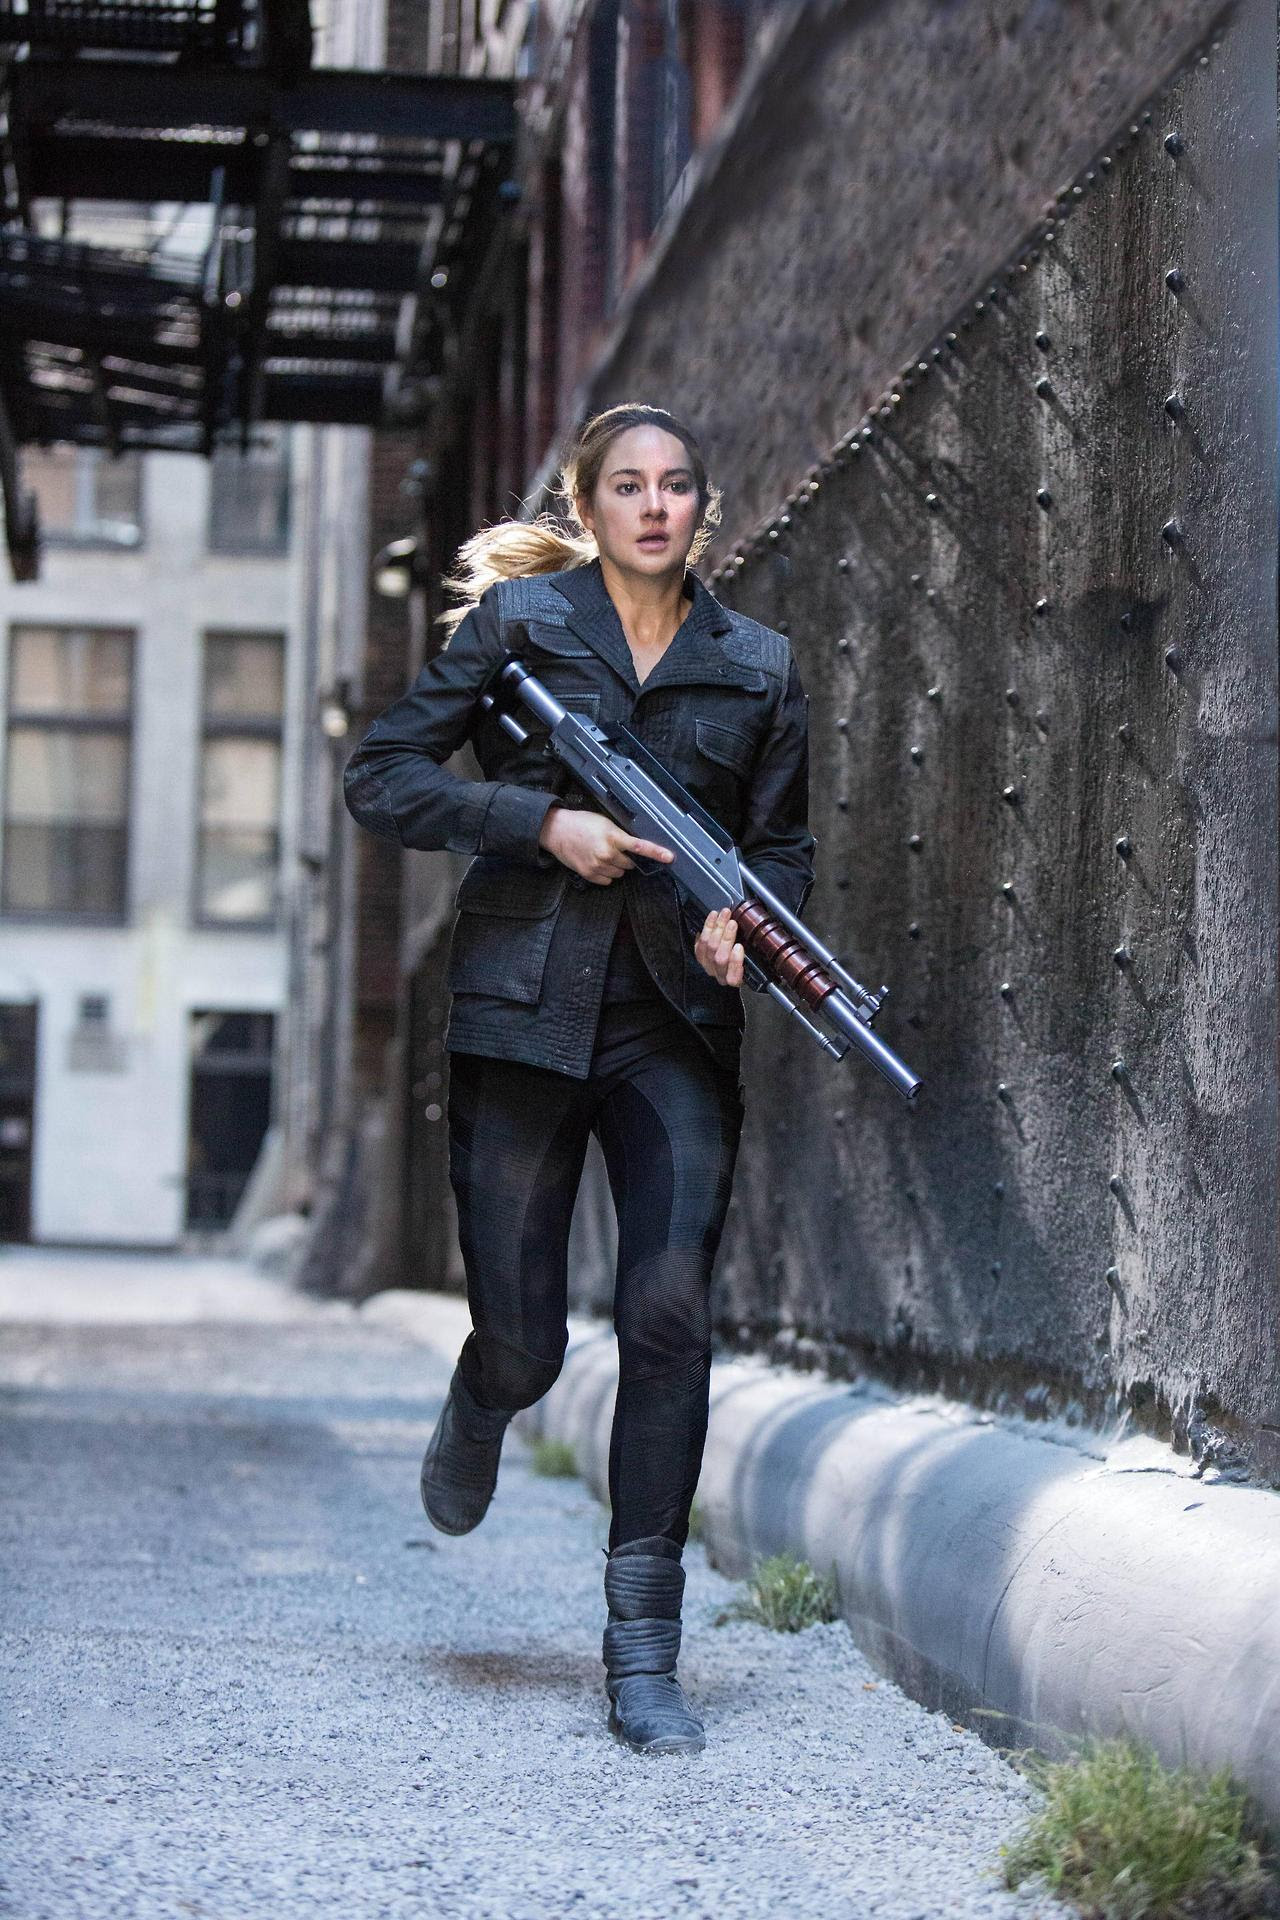 http://fandomnetnews.files.wordpress.com/2014/03/divergentstill19.jpg